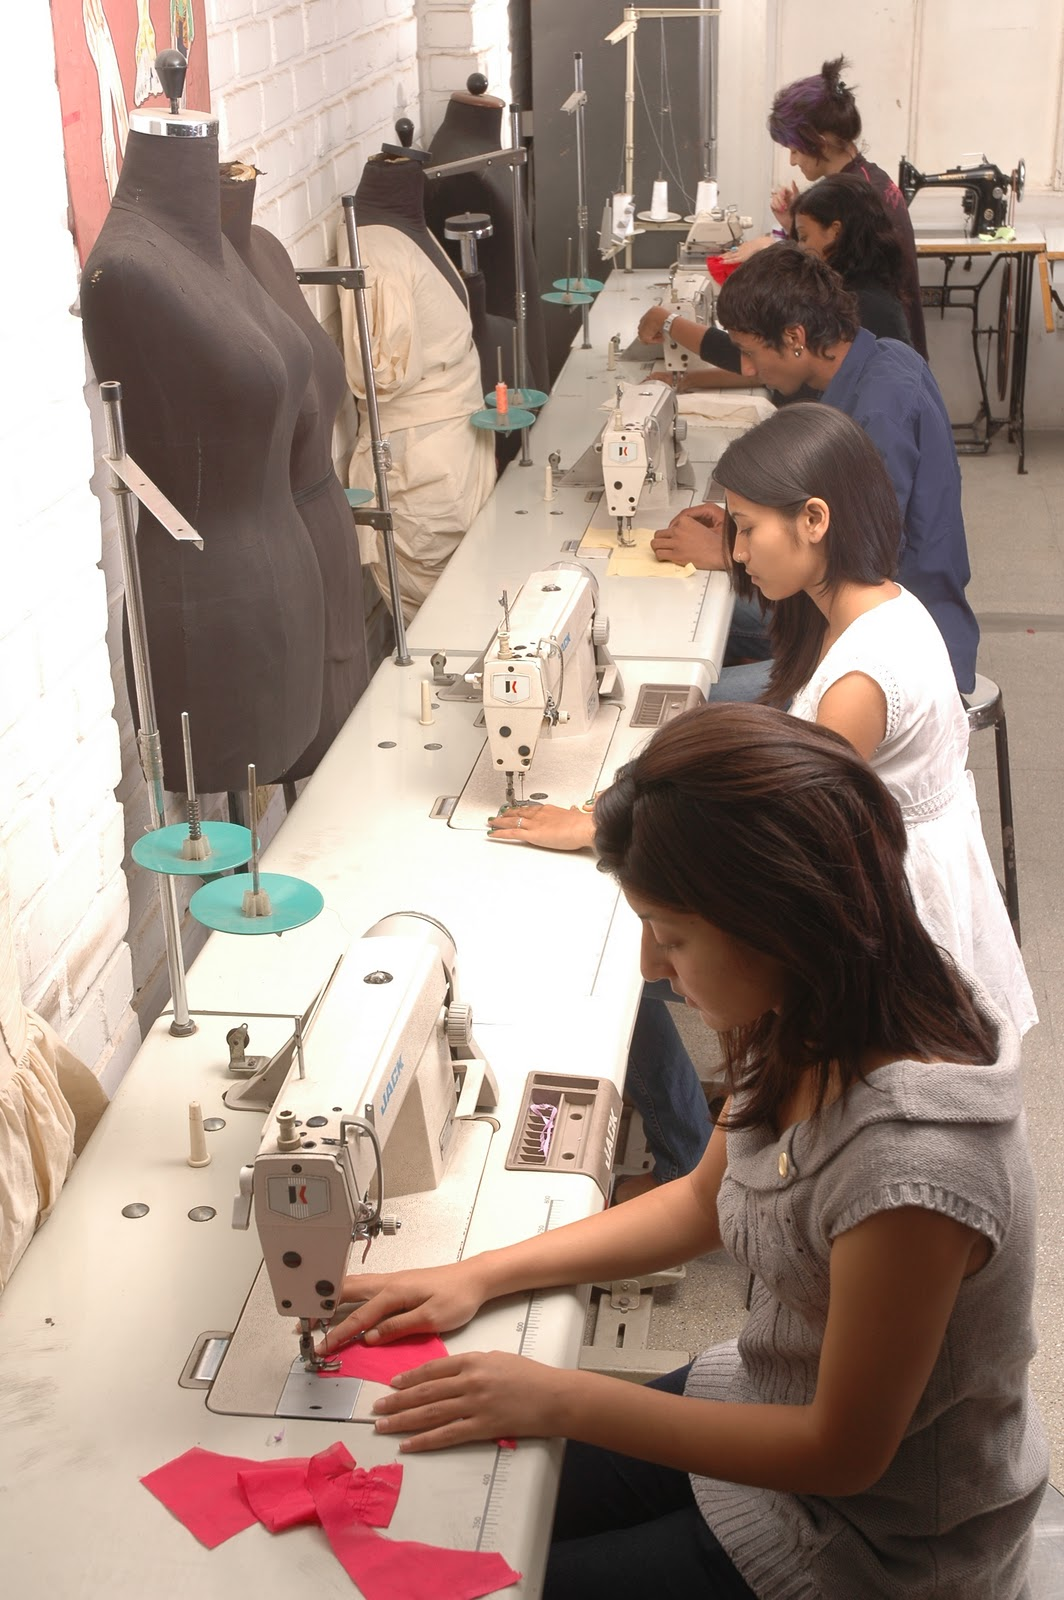 Institute Of Fashion Technology Use Of Technology In Fashion Designing